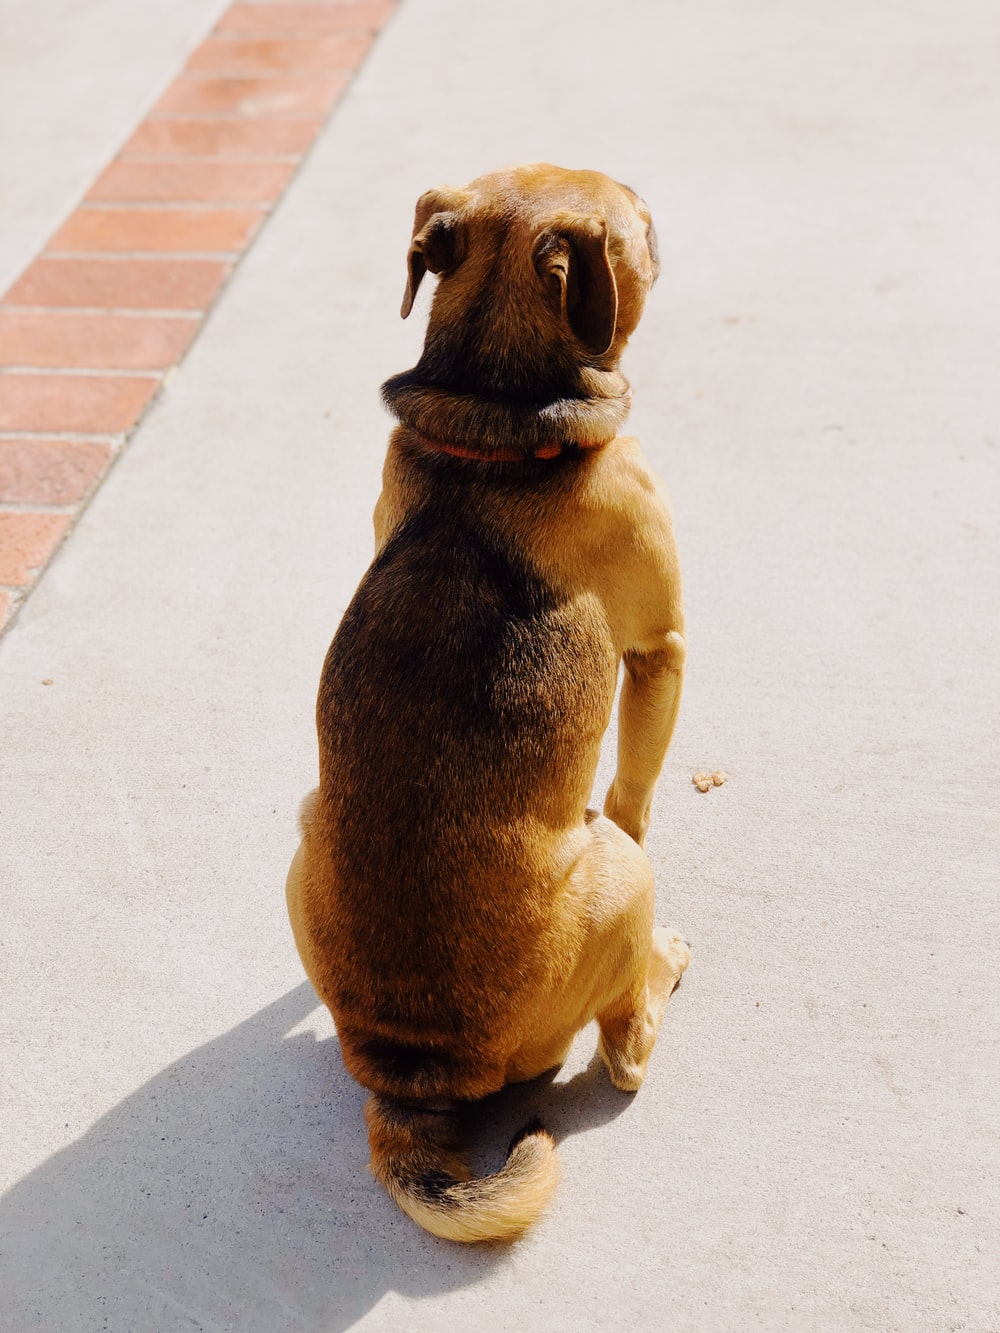 brown short-coated dog on white concrete road